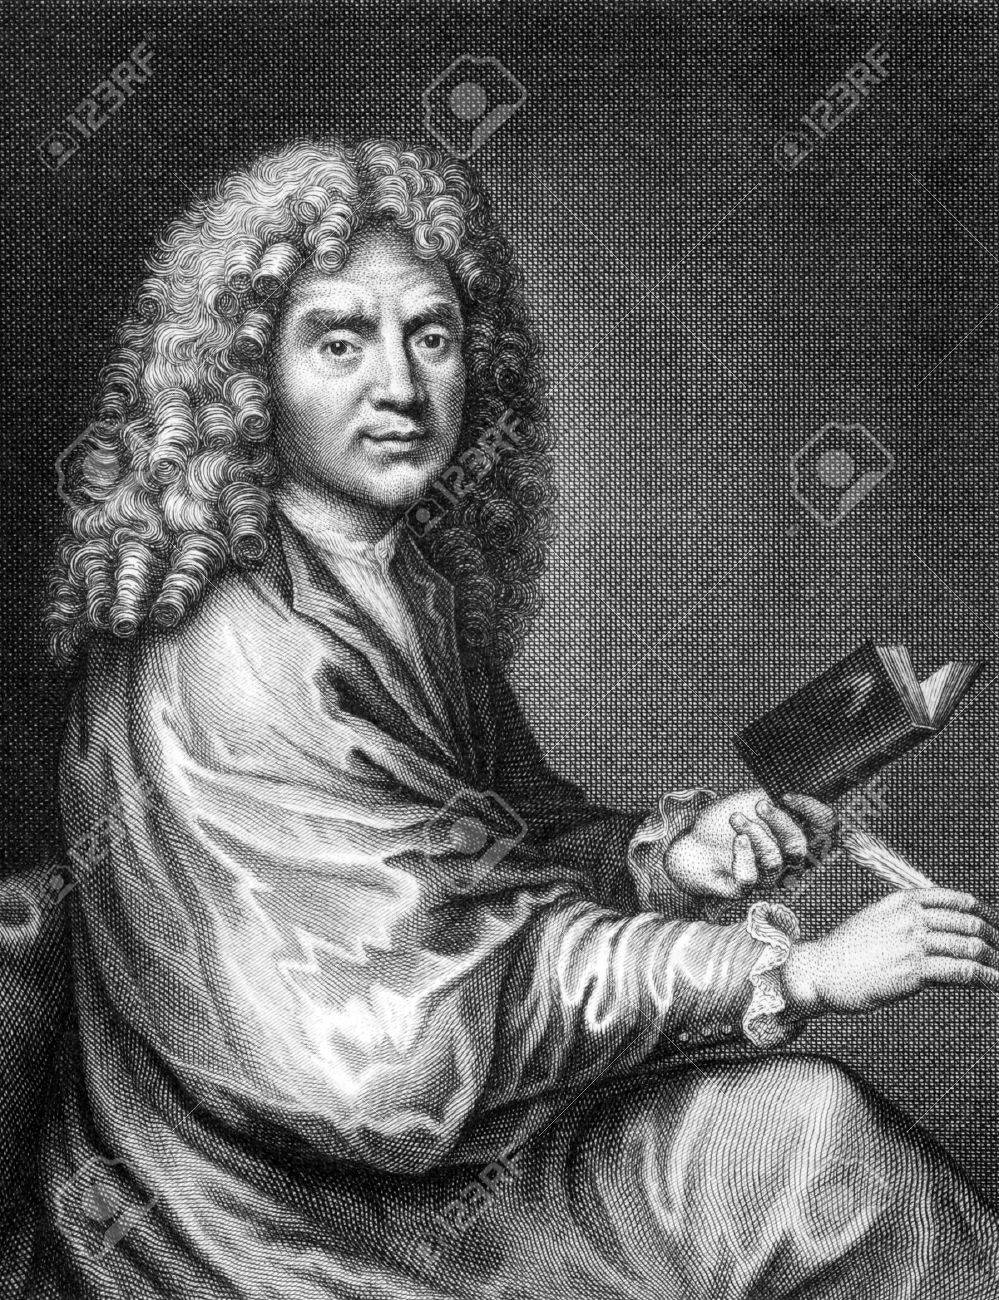 Moliere (1622-1676) on engraving from 1859. French playwright and actor,